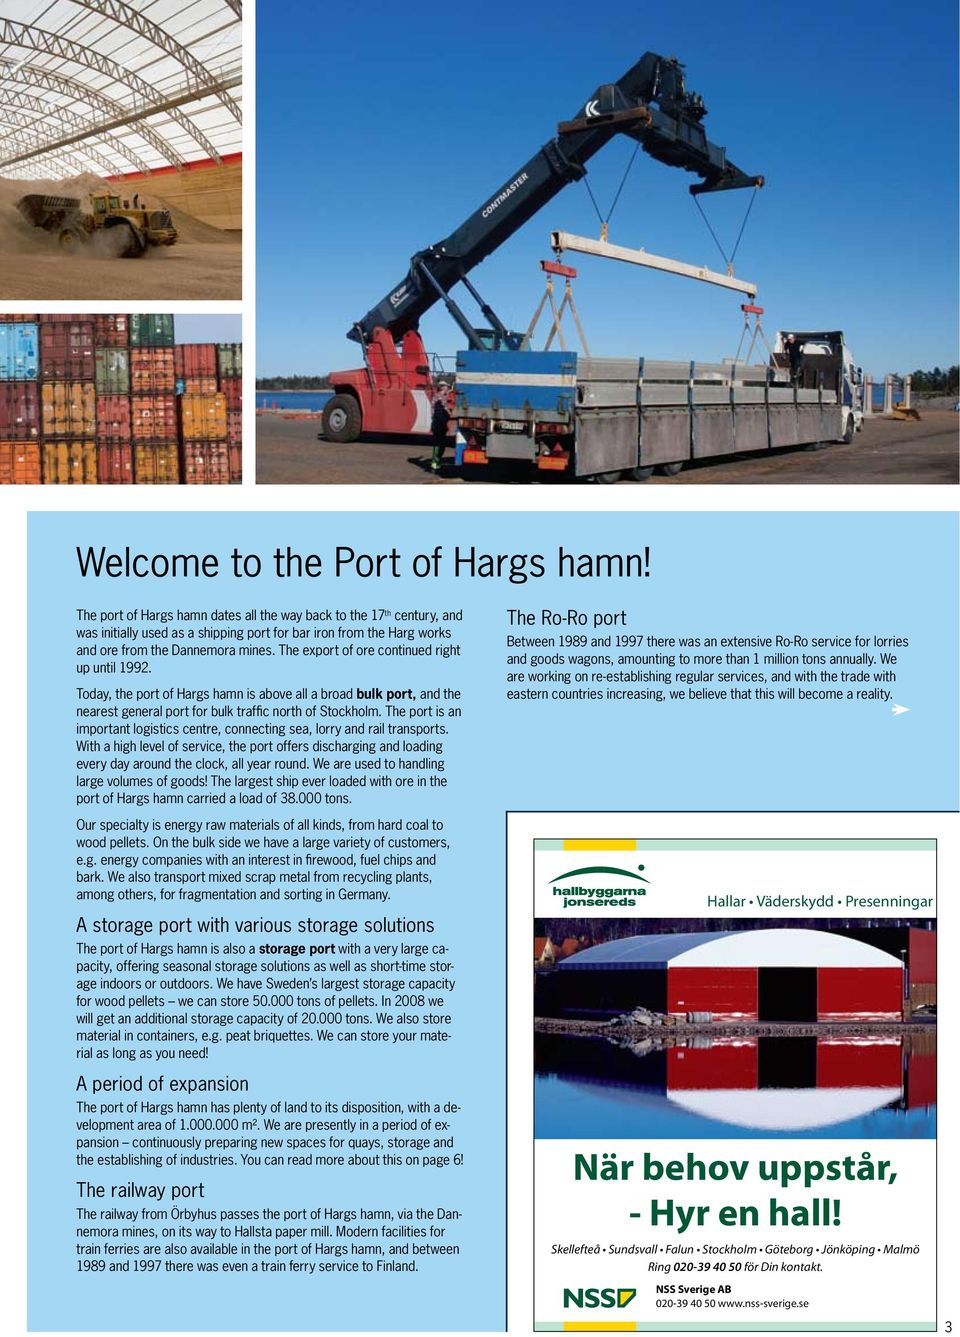 The export of ore continued right up until 1992. Today, the port of Hargs hamn is above all a broad bulk port, and the nearest general port for bulk traffic north of Stockholm.